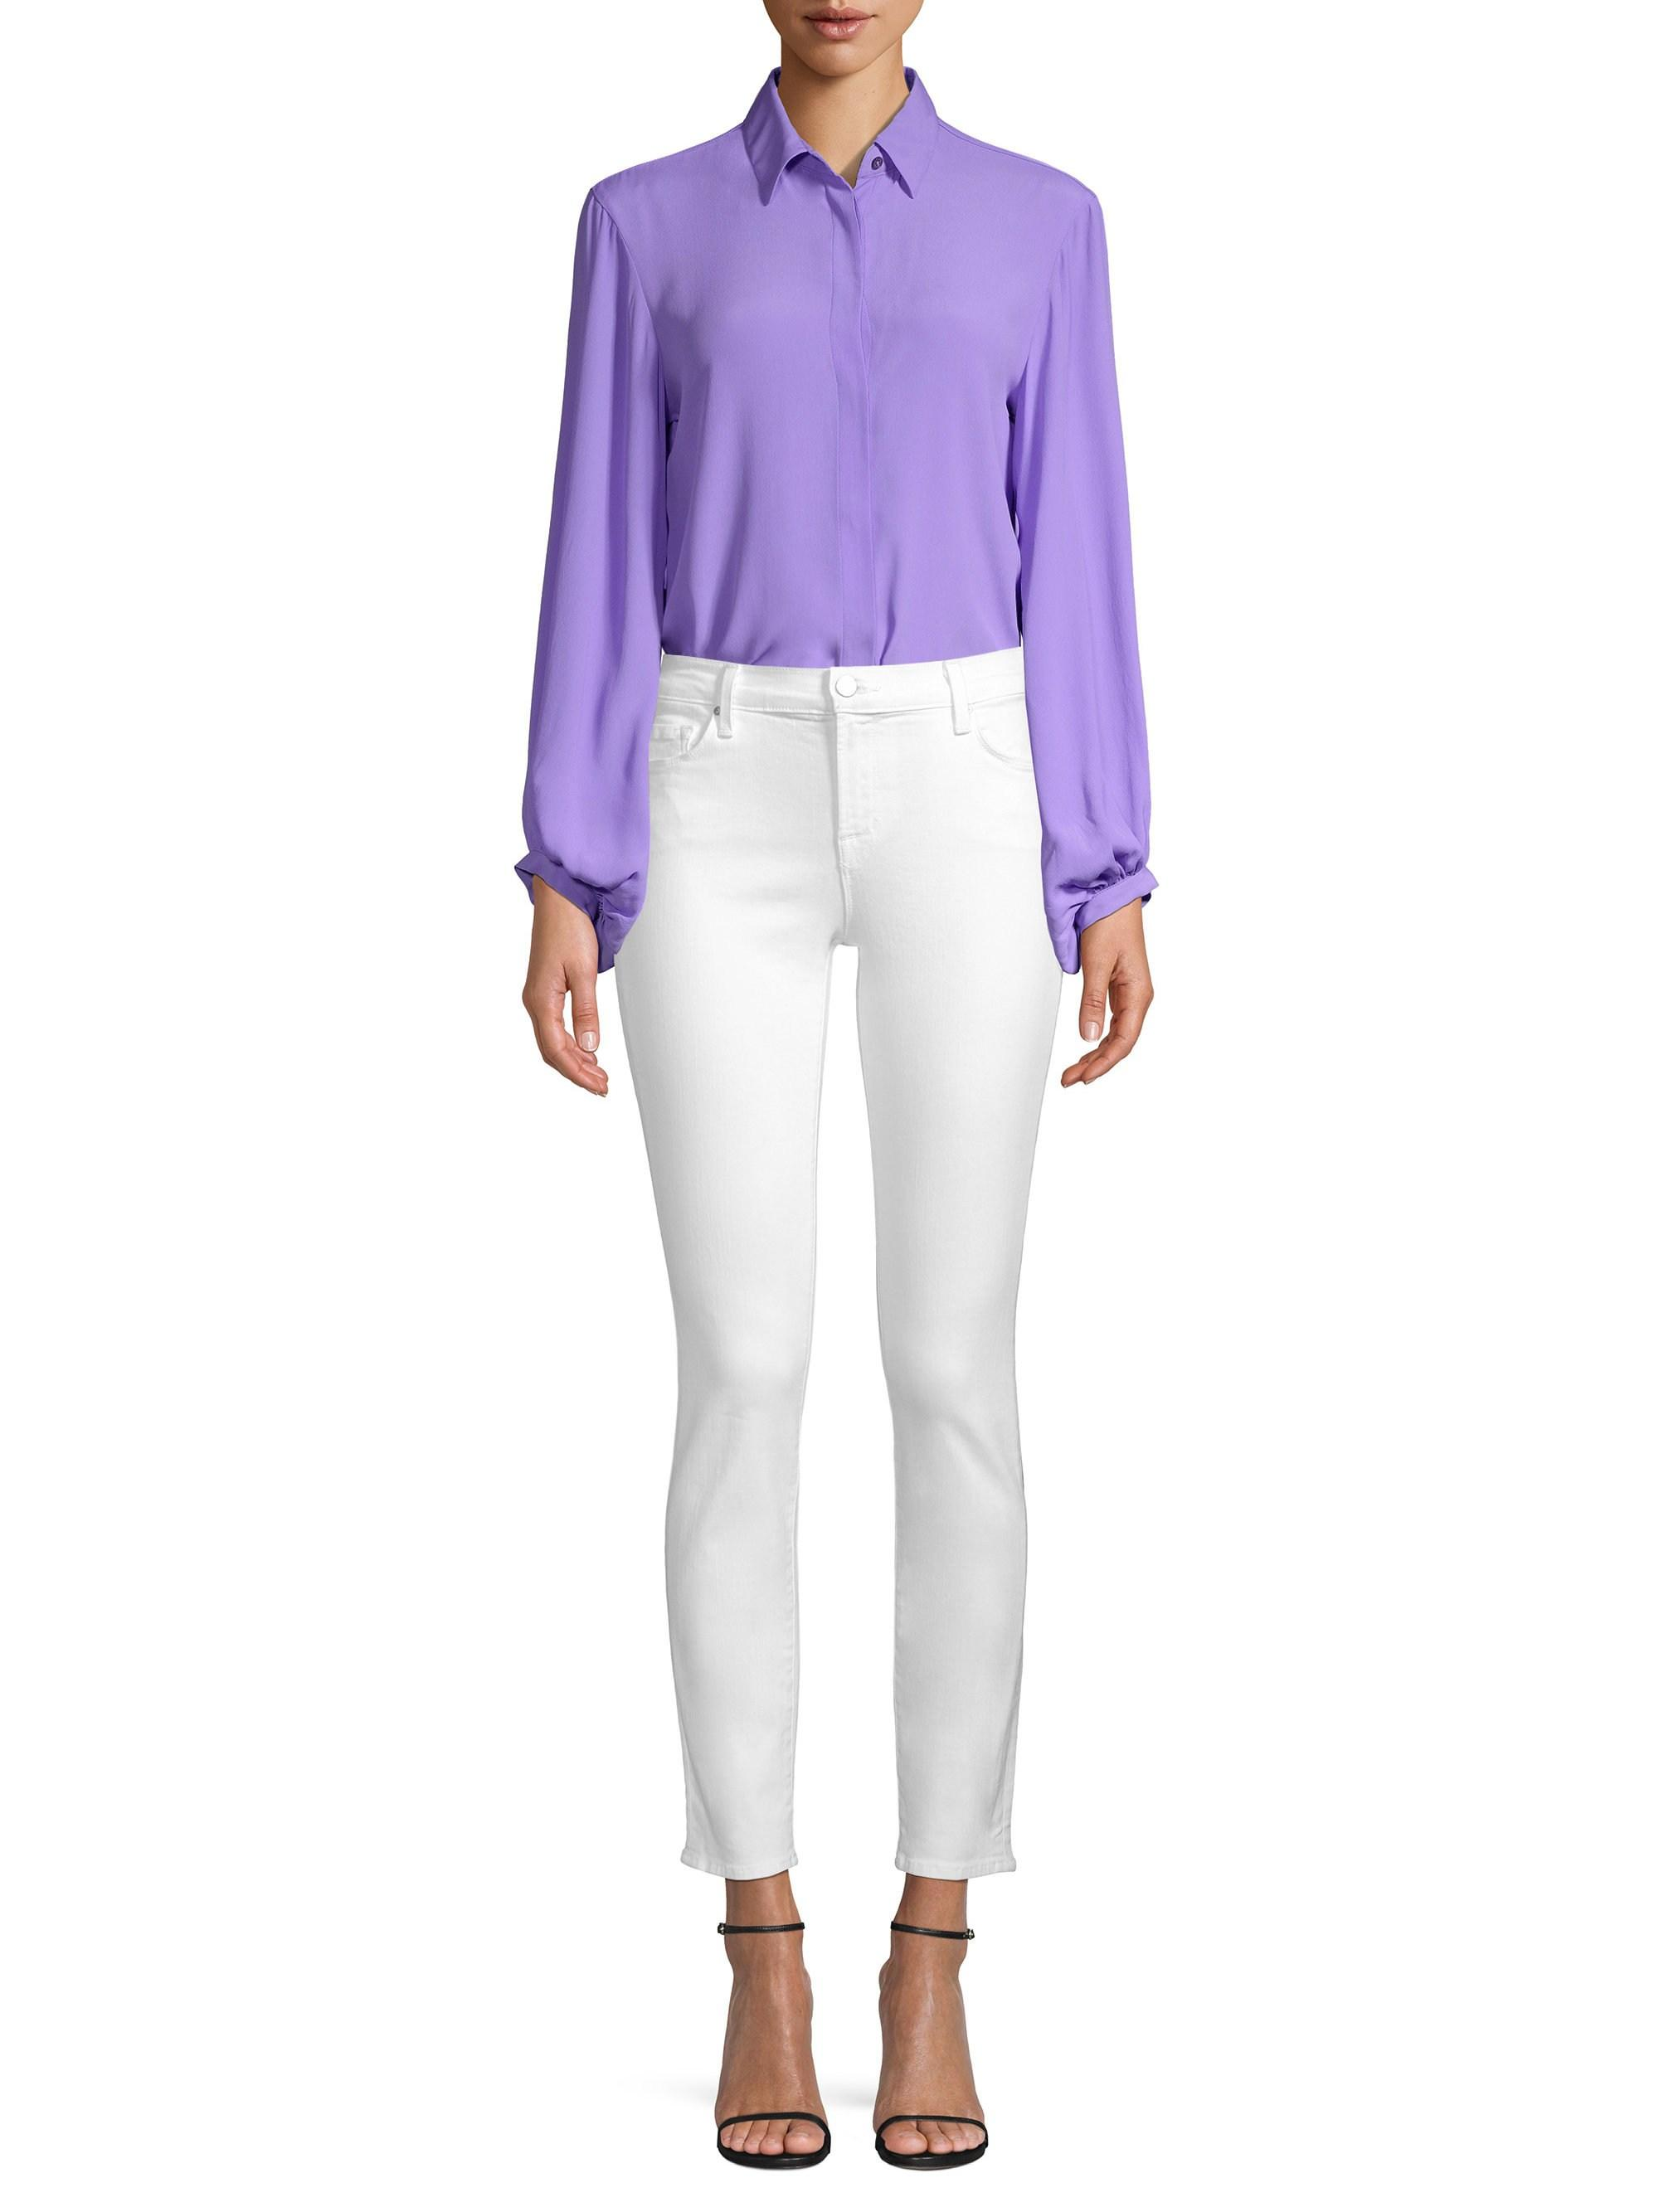 c8f233259df346 Beatrice B. Women's Silk-blend Button-front Blouse - Lilac - Size 52 ...